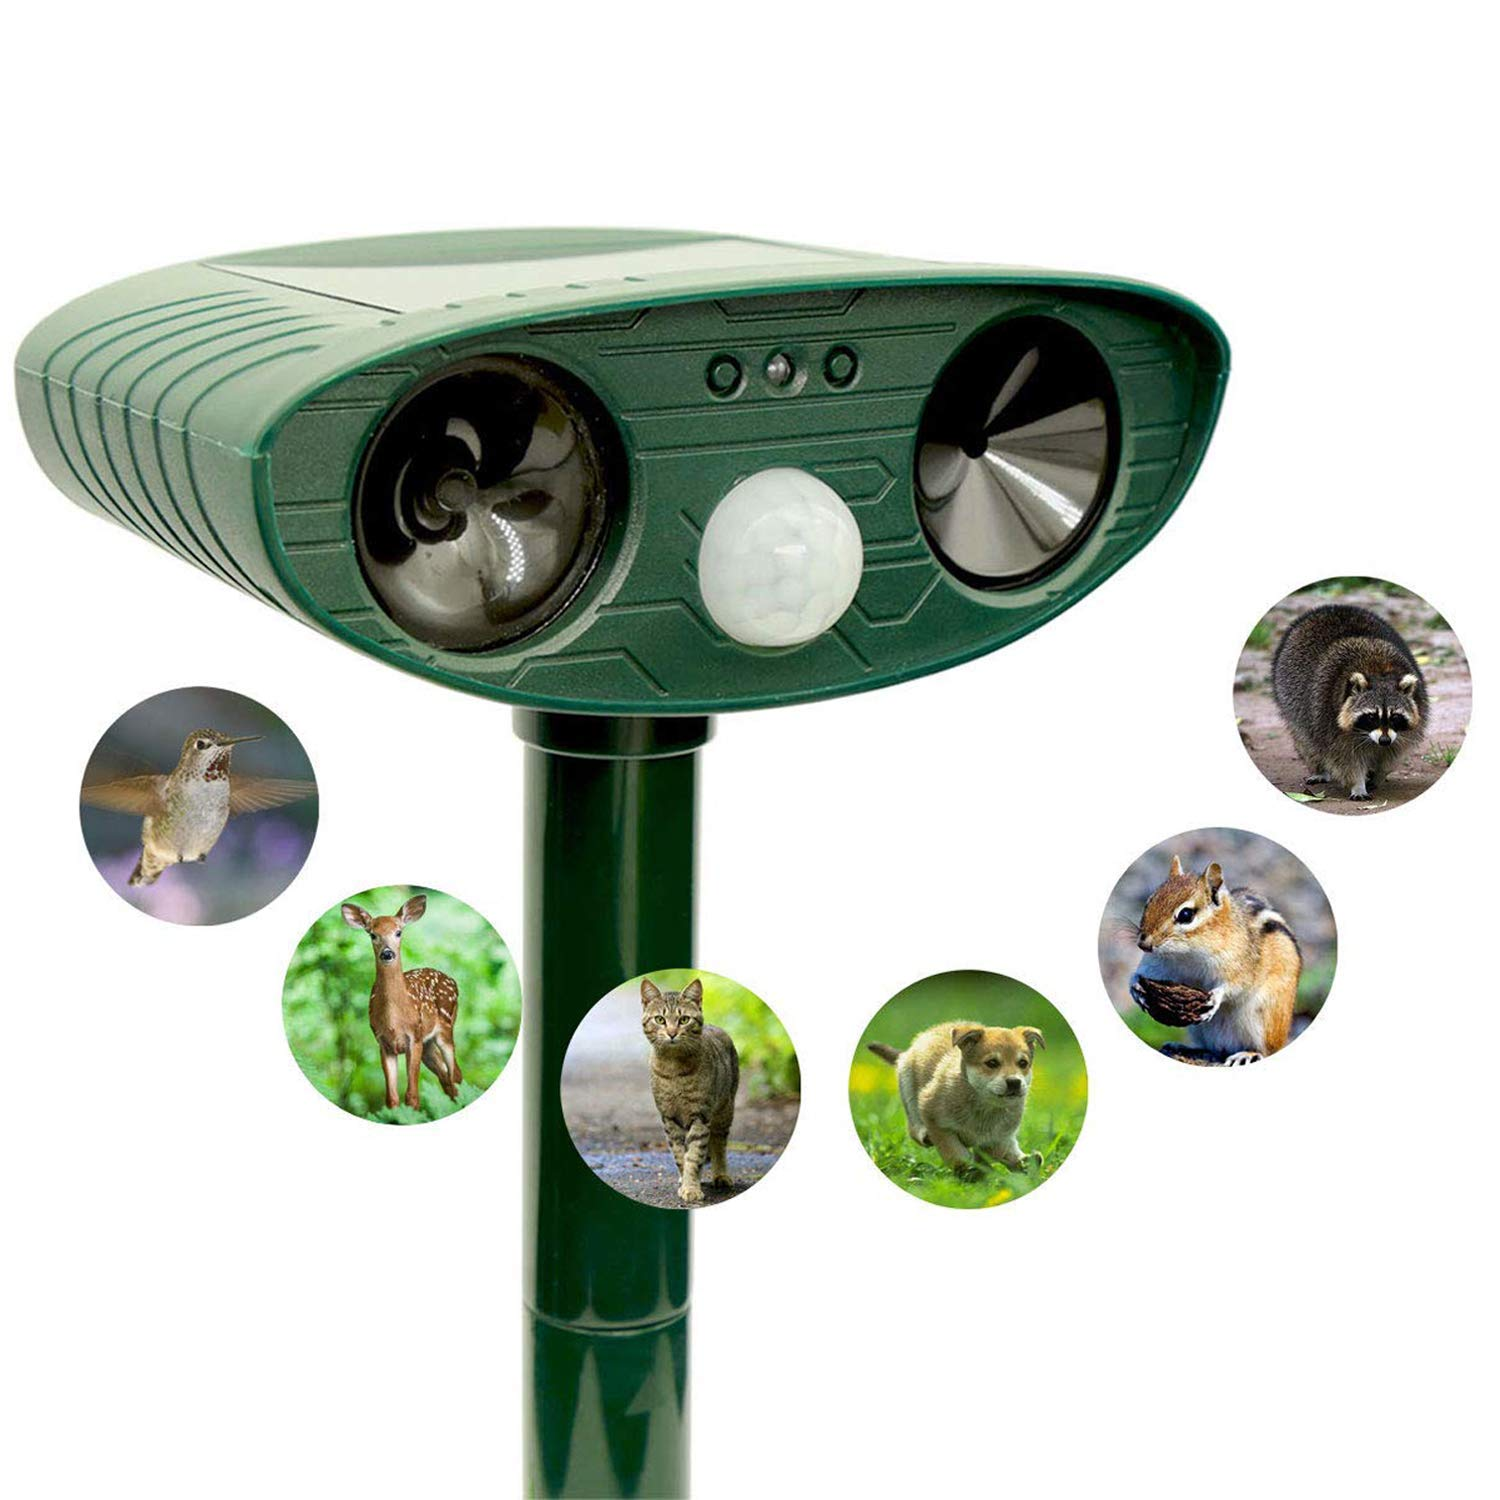 Ultrasonic Outdoor Solar Powered Pest and Animal Repeller by ZOVENCHI